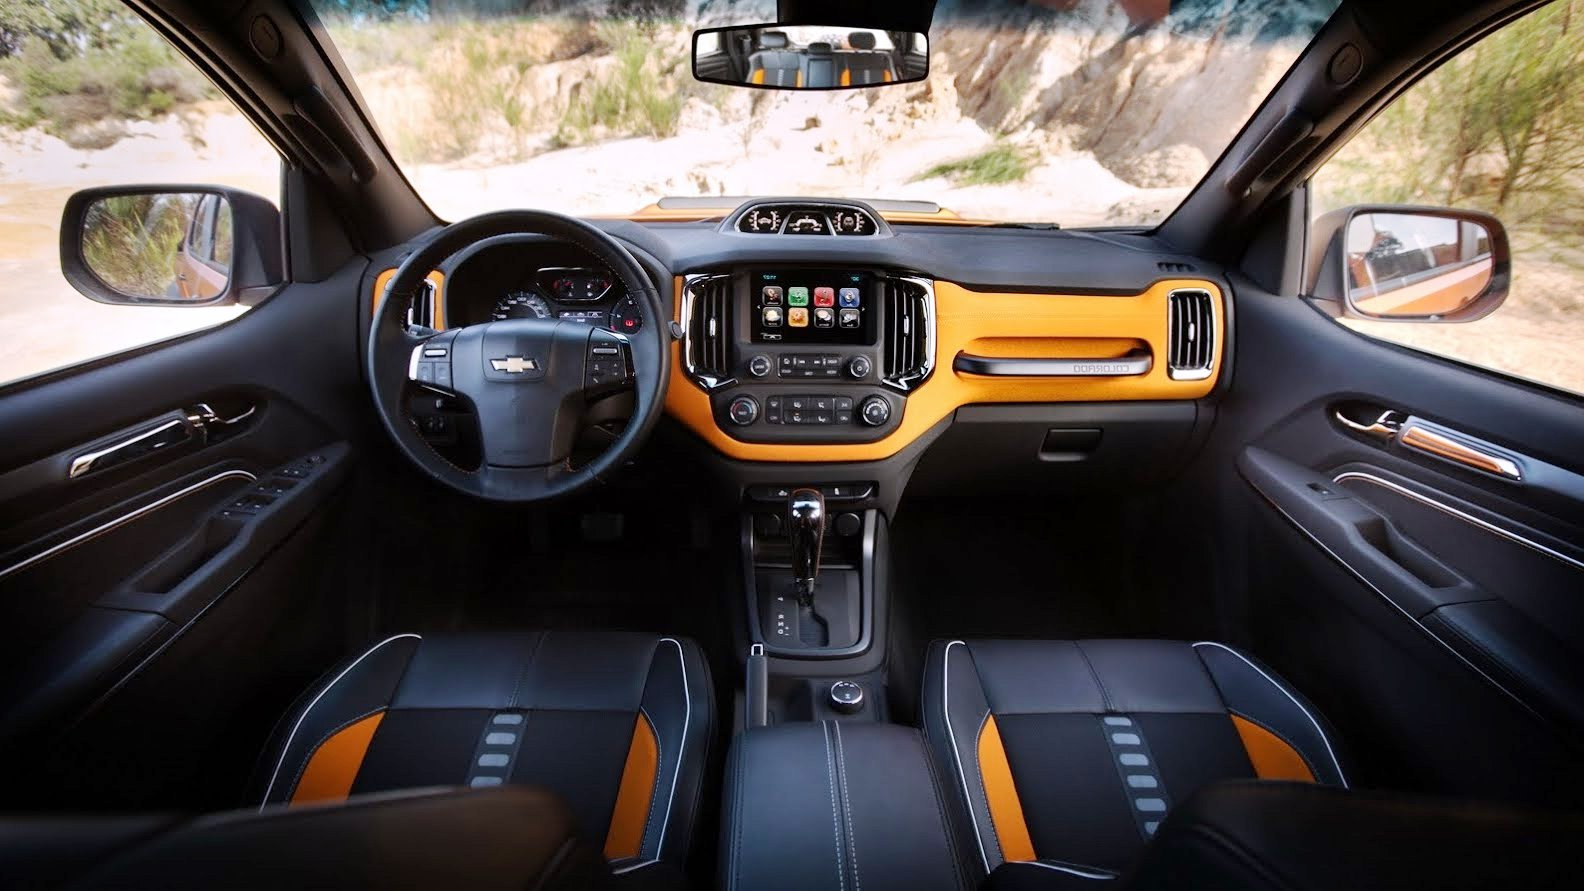 2018 Chevrolet Colorado Changes Interior